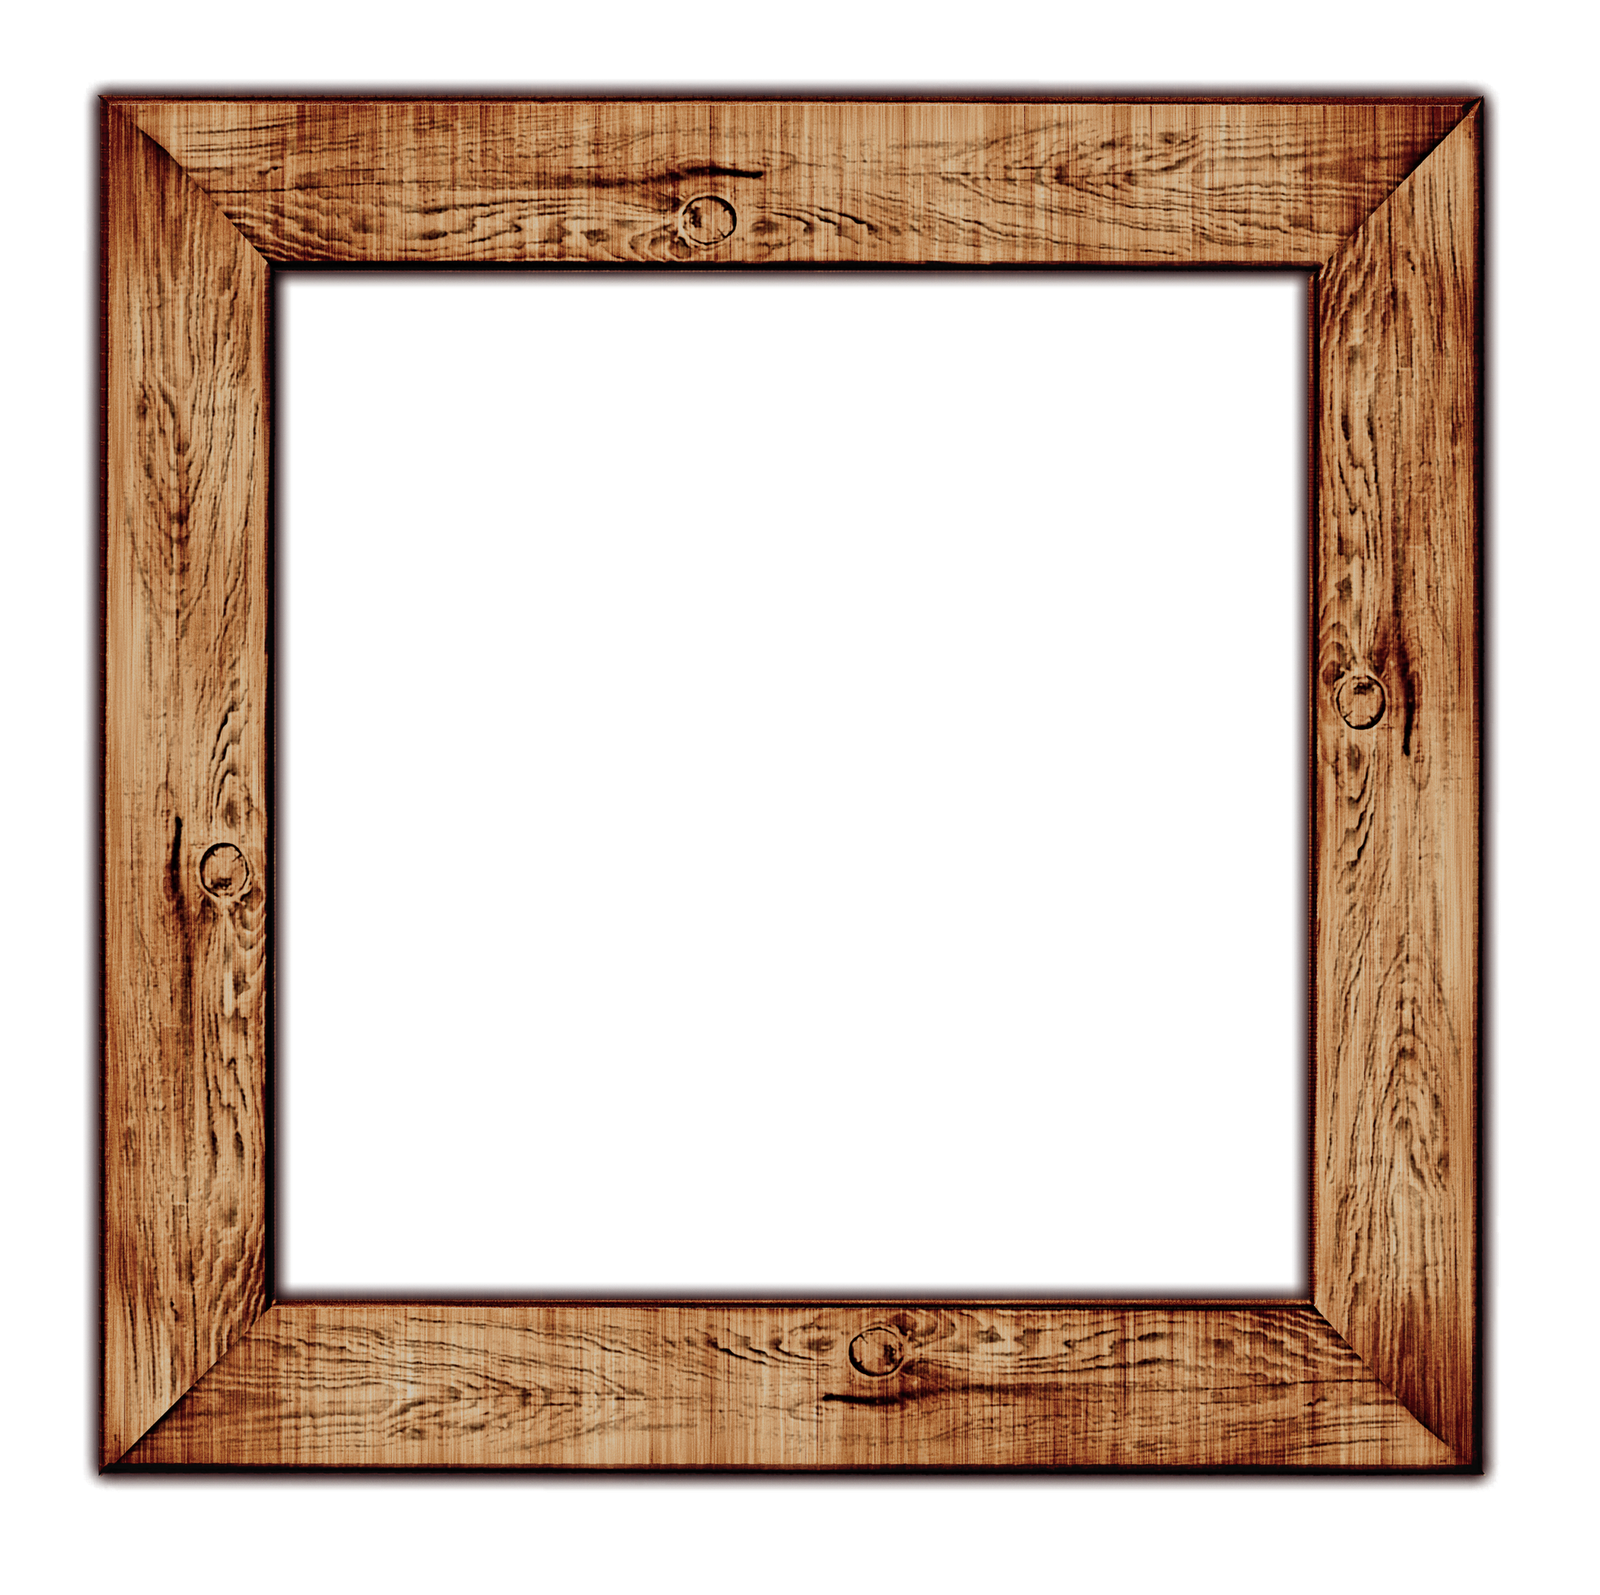 Wood Frame Png : Tagged Png Frame Wood Brown Square  Bewildero.us